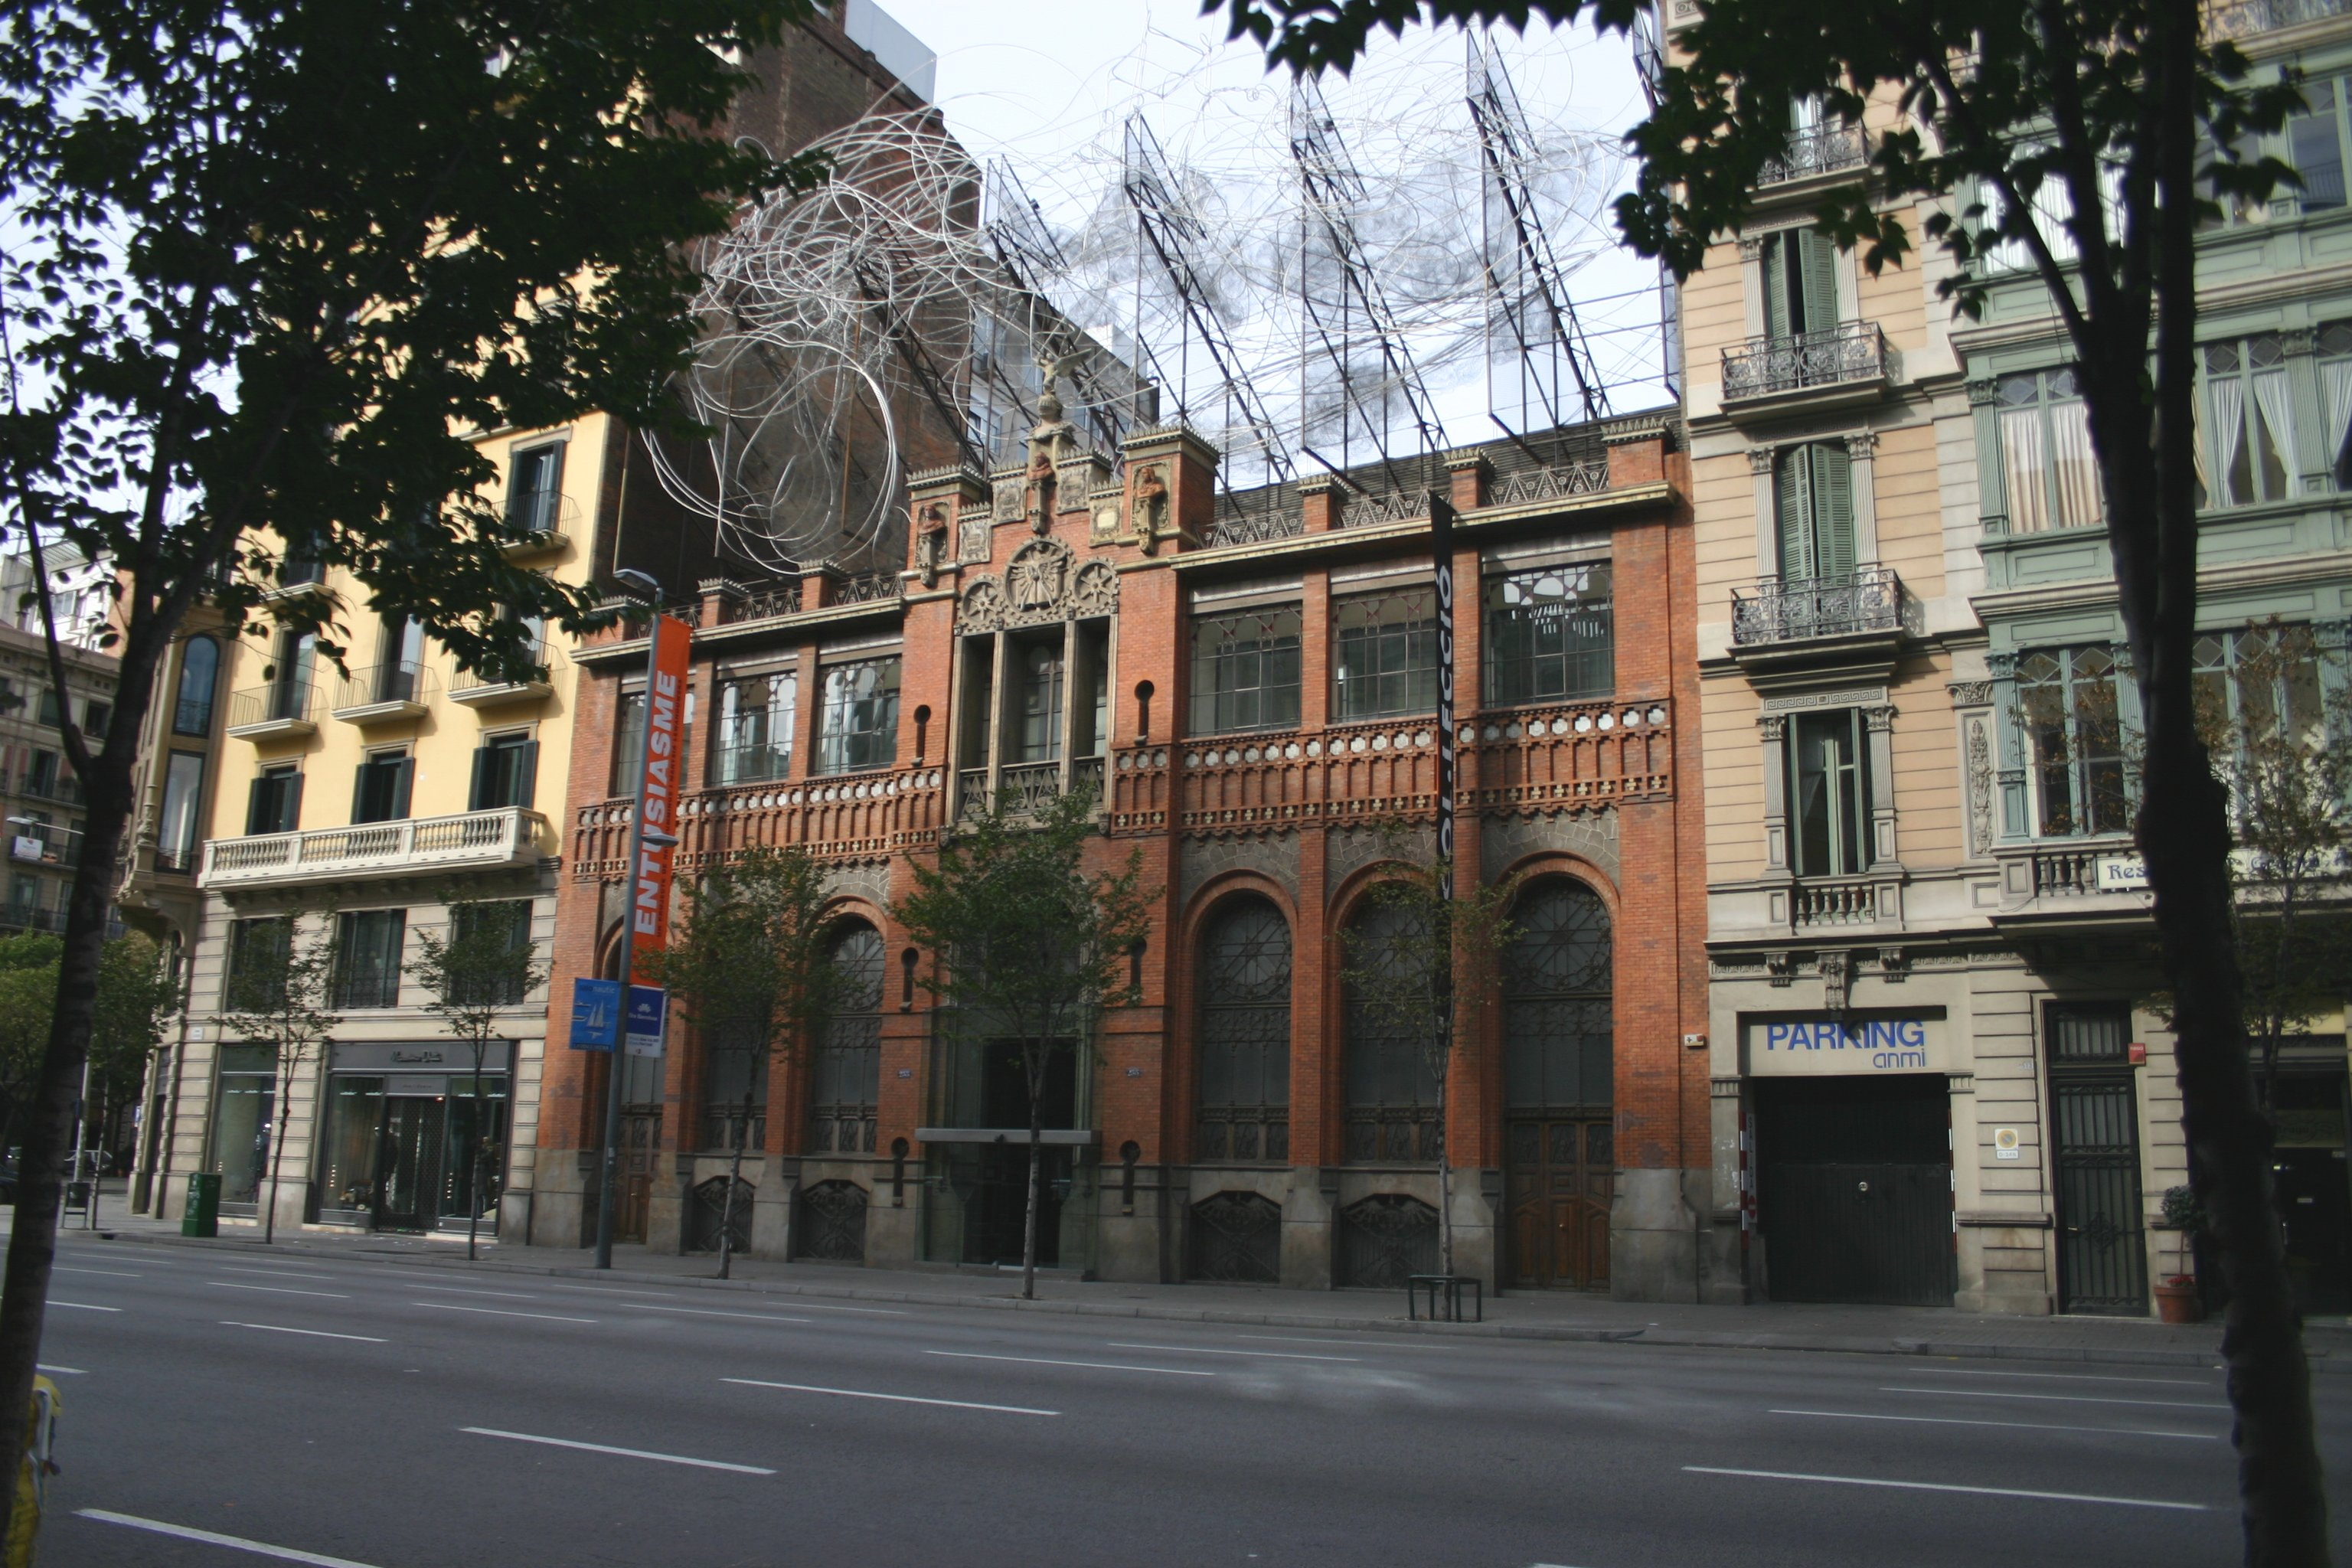 Antoni Tàpies Foundation in Barcelona